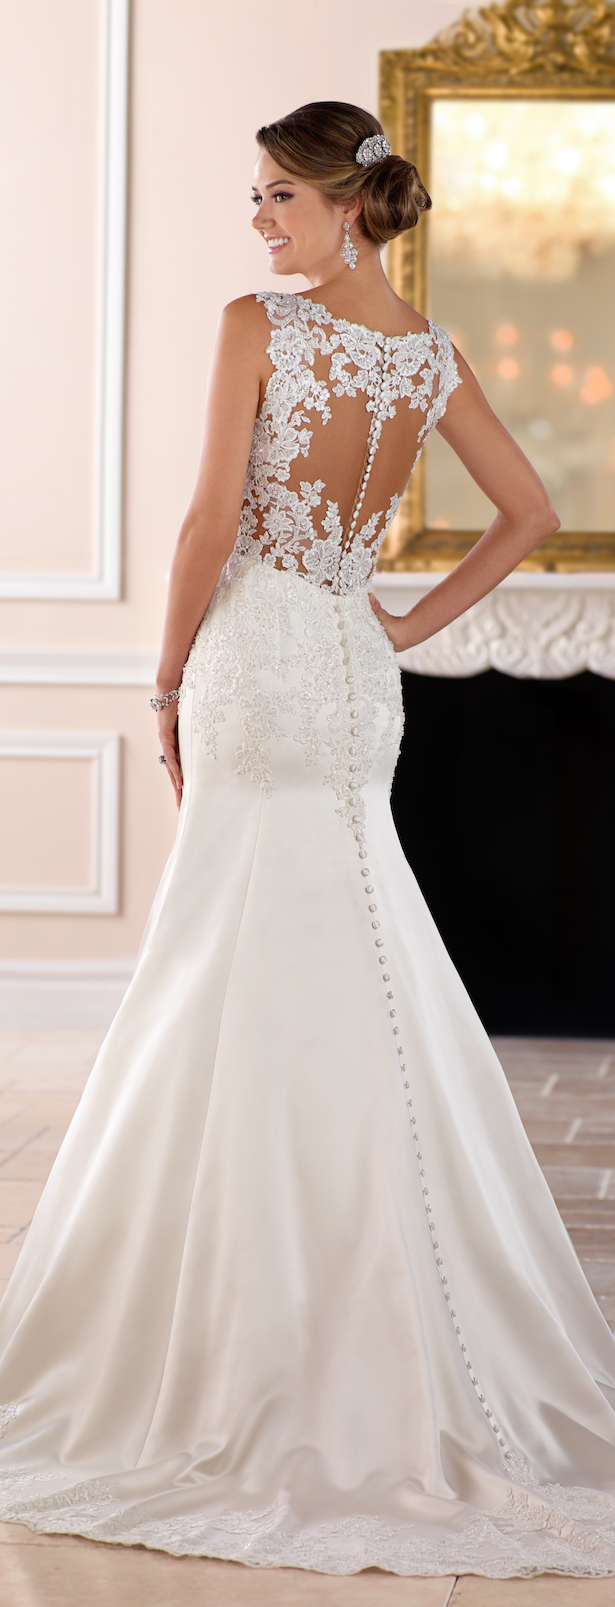 Wedding dresses 2017 summer collection : The best bridal gowns out there by visiting my wedding dress gallery